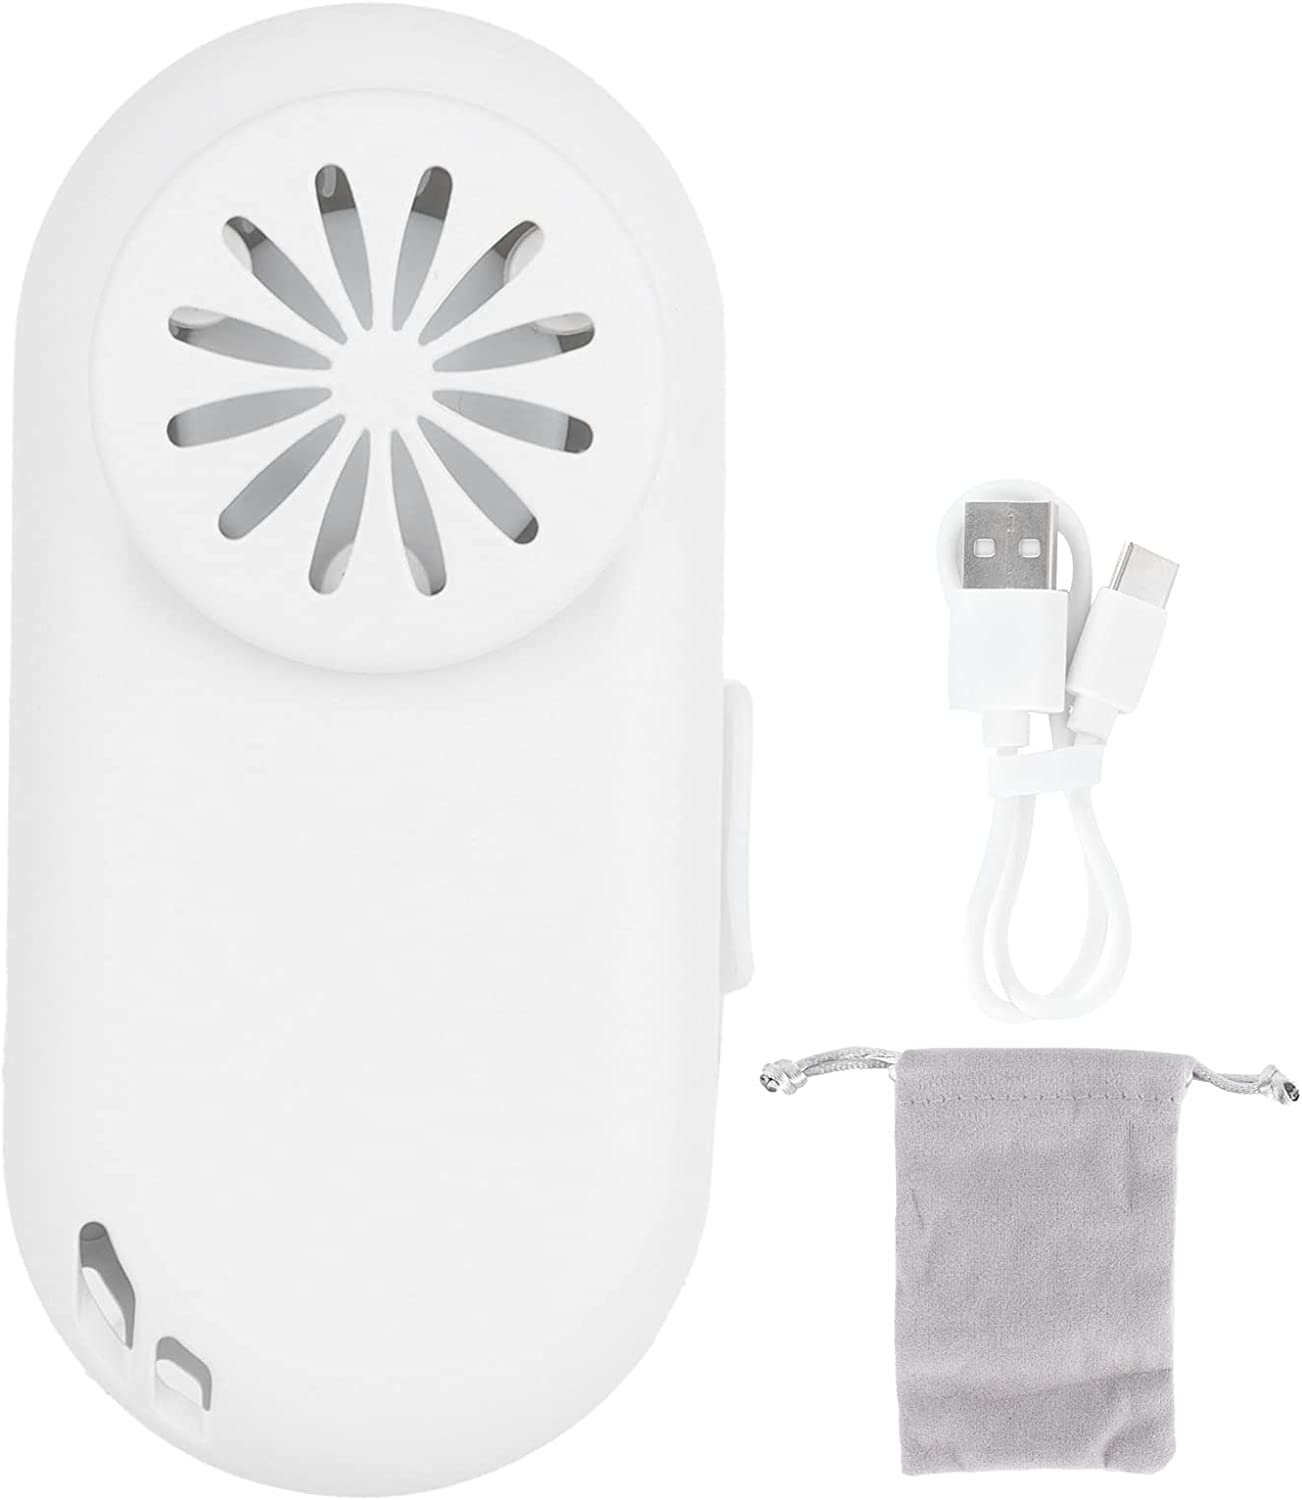 Ranking TOP1 Mini Portable Fan USB Free Shipping New Hand Cooler Silent